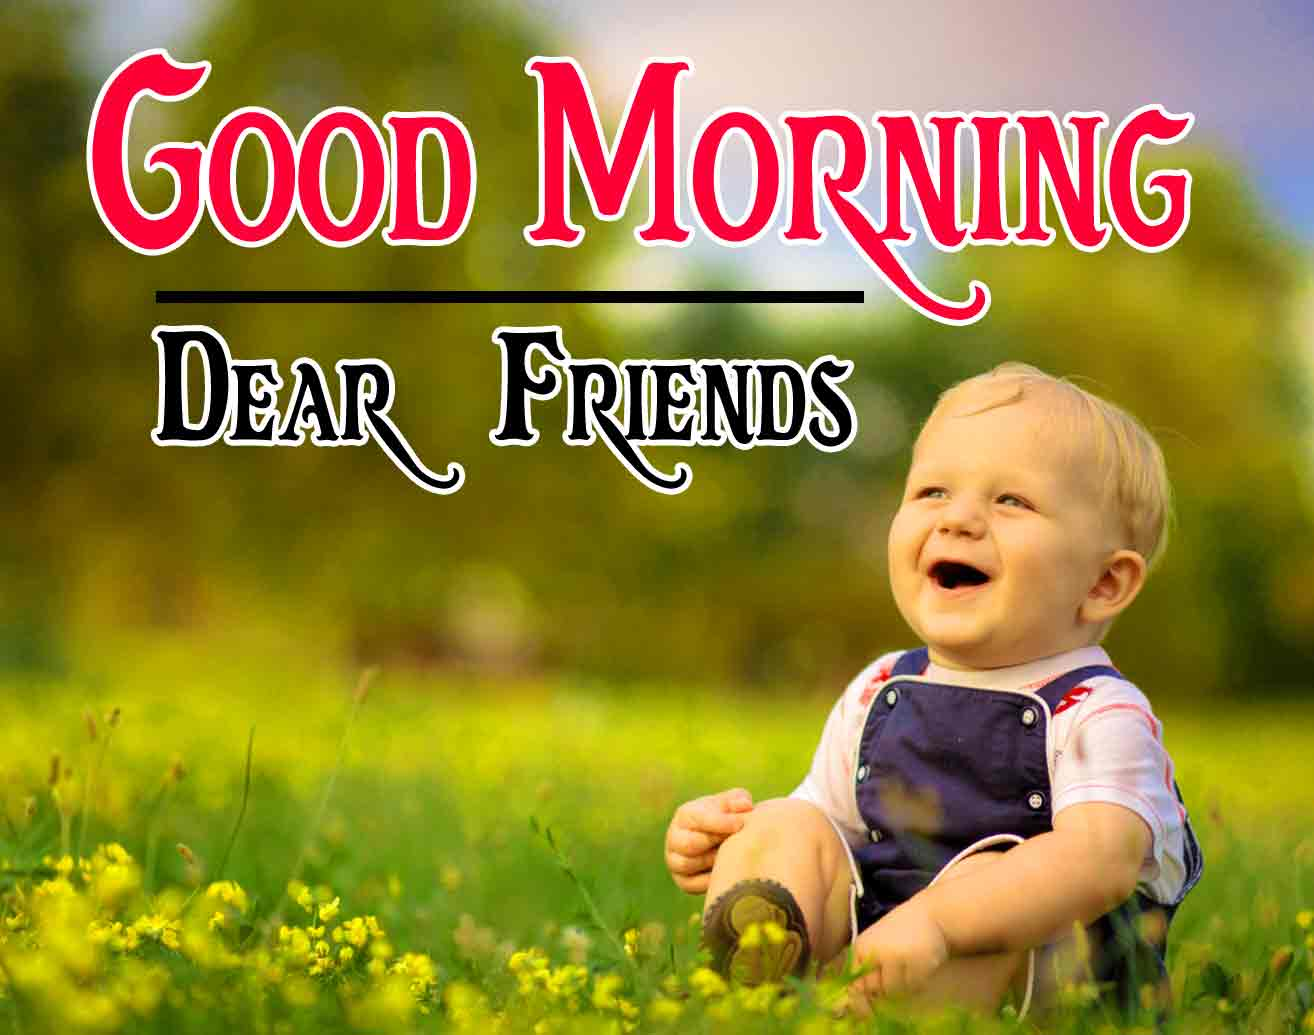 Cute Baby Good Morning 4k HD Images HD Pics Download